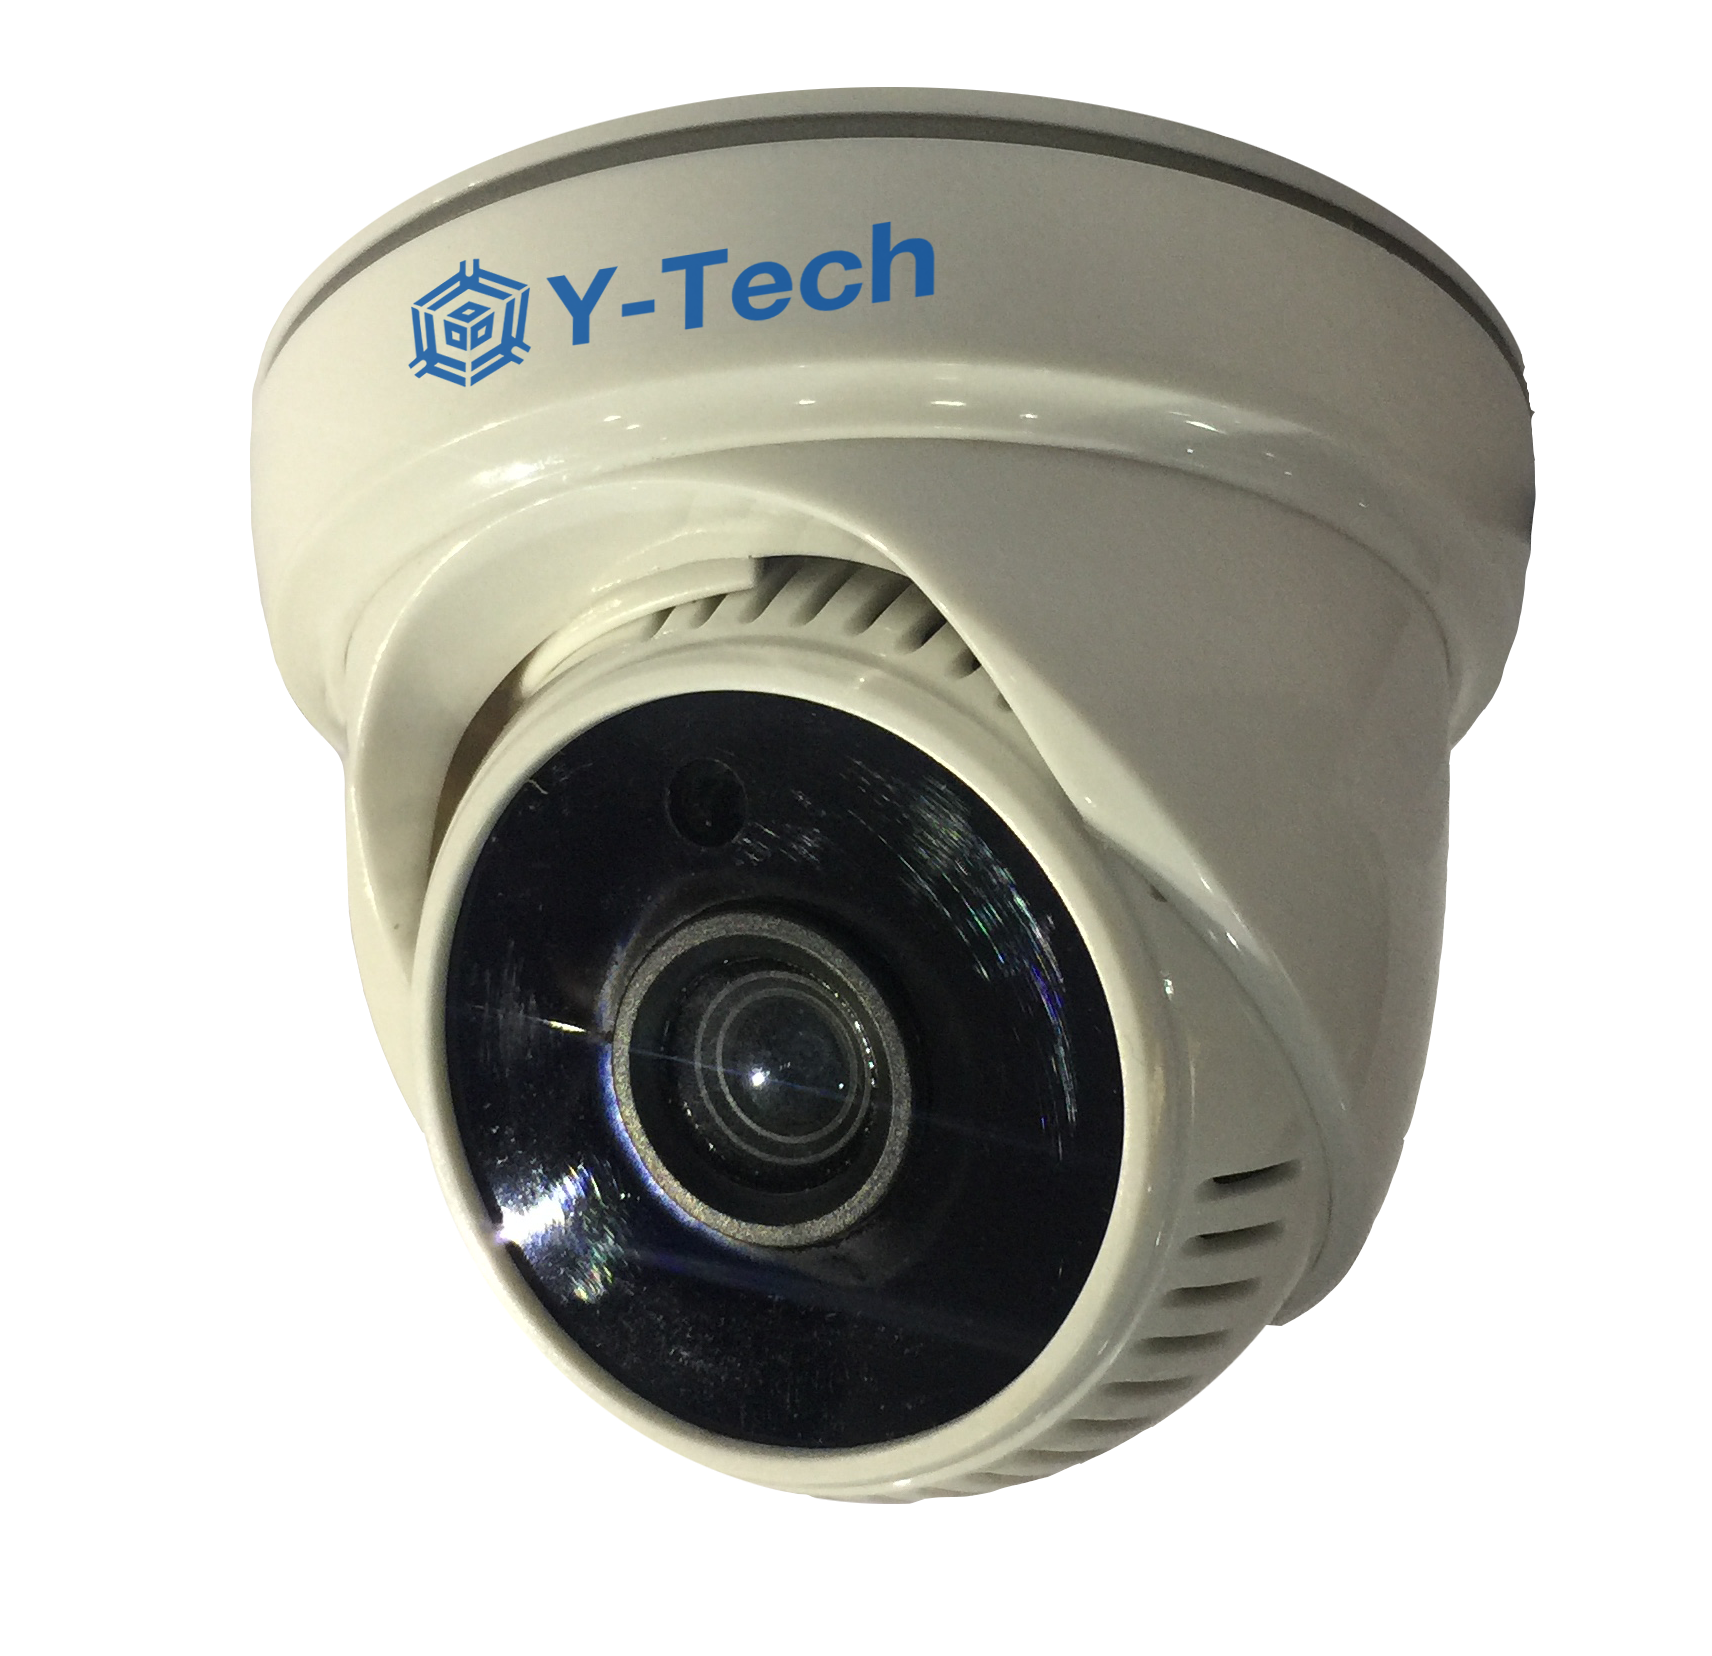 YT-321 Star – 2.0 MP – 3.6 mm – Indoor AHD Camera : Y-Tech